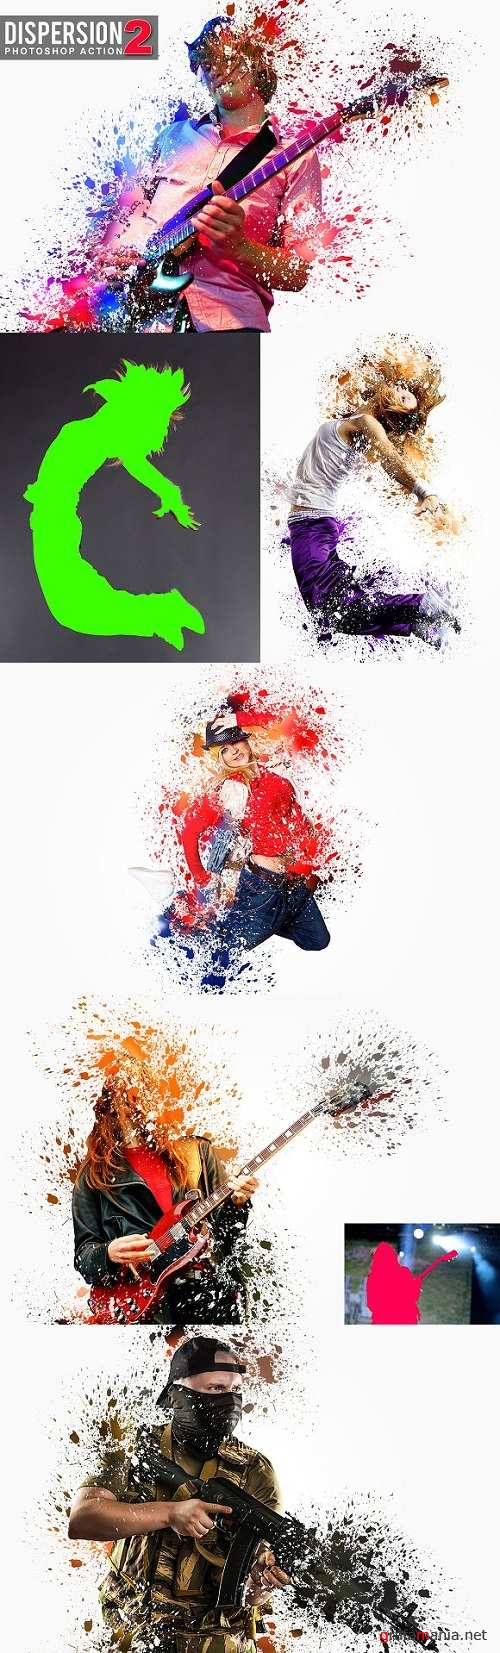 Dispersion 2 Photoshop Action 2205871